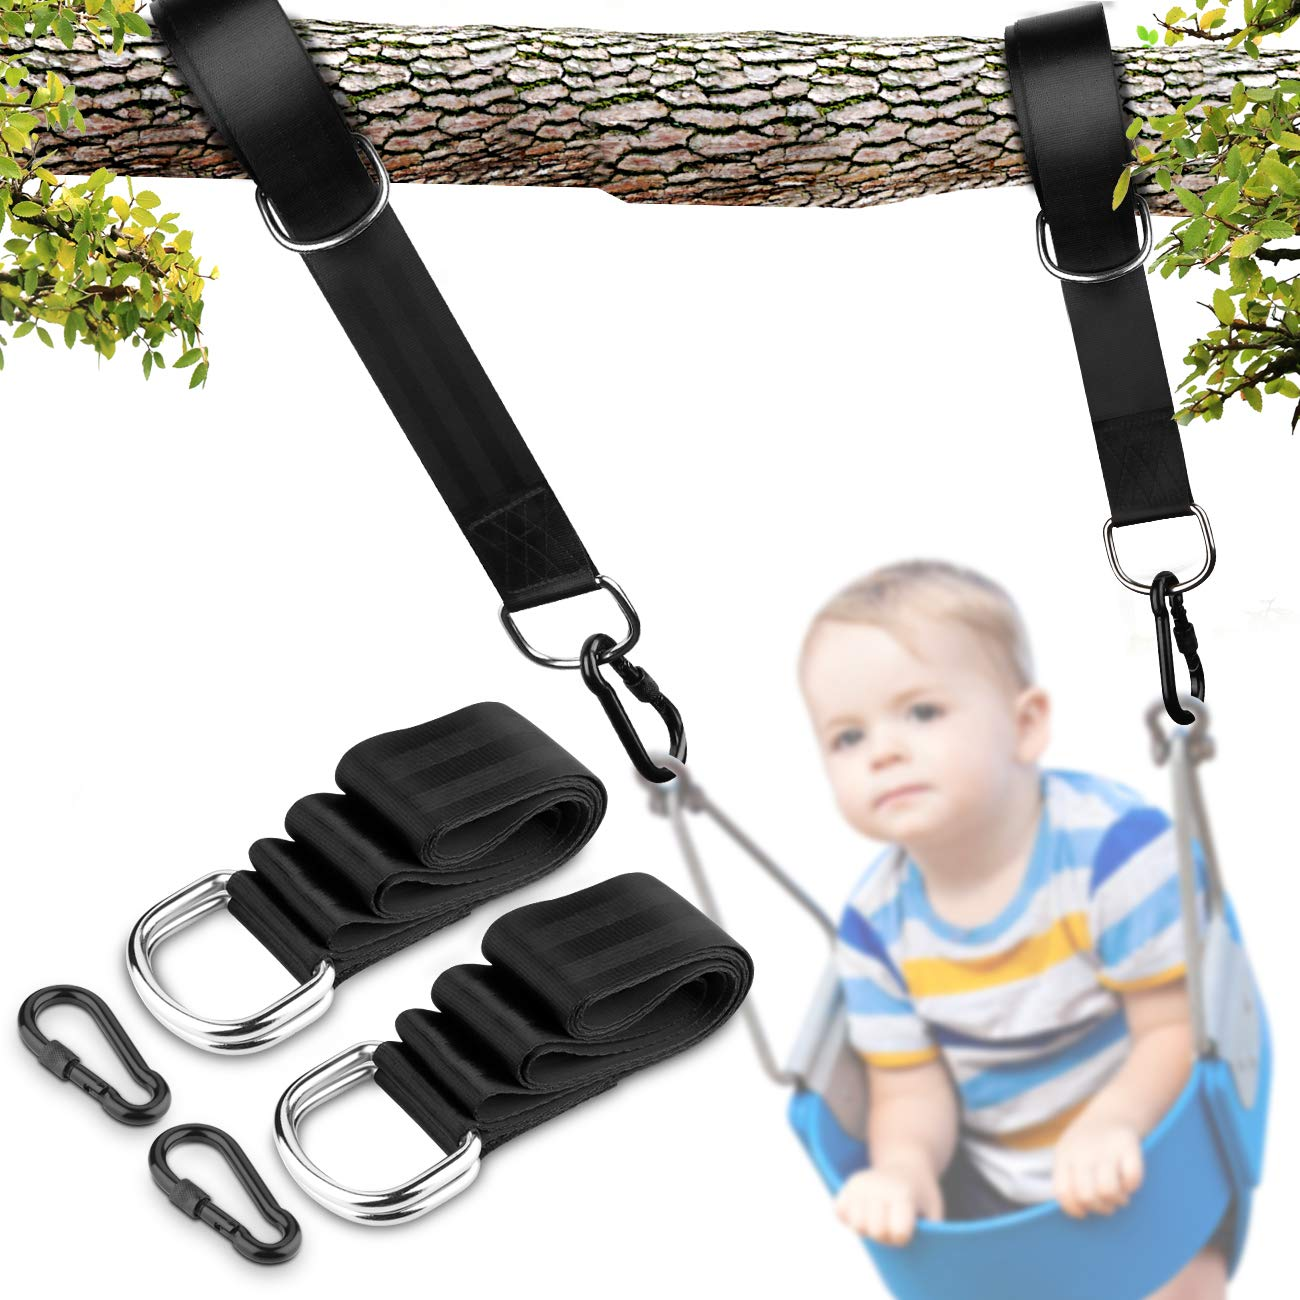 Tree Swing Hanging Strap Kit - Up To 2000 lbs Weight Supporting, 5 ft Long and 2 inches Wide Swing Straps Kit Perfect for Tree Swing and Hammocks for Both Kids and Adults